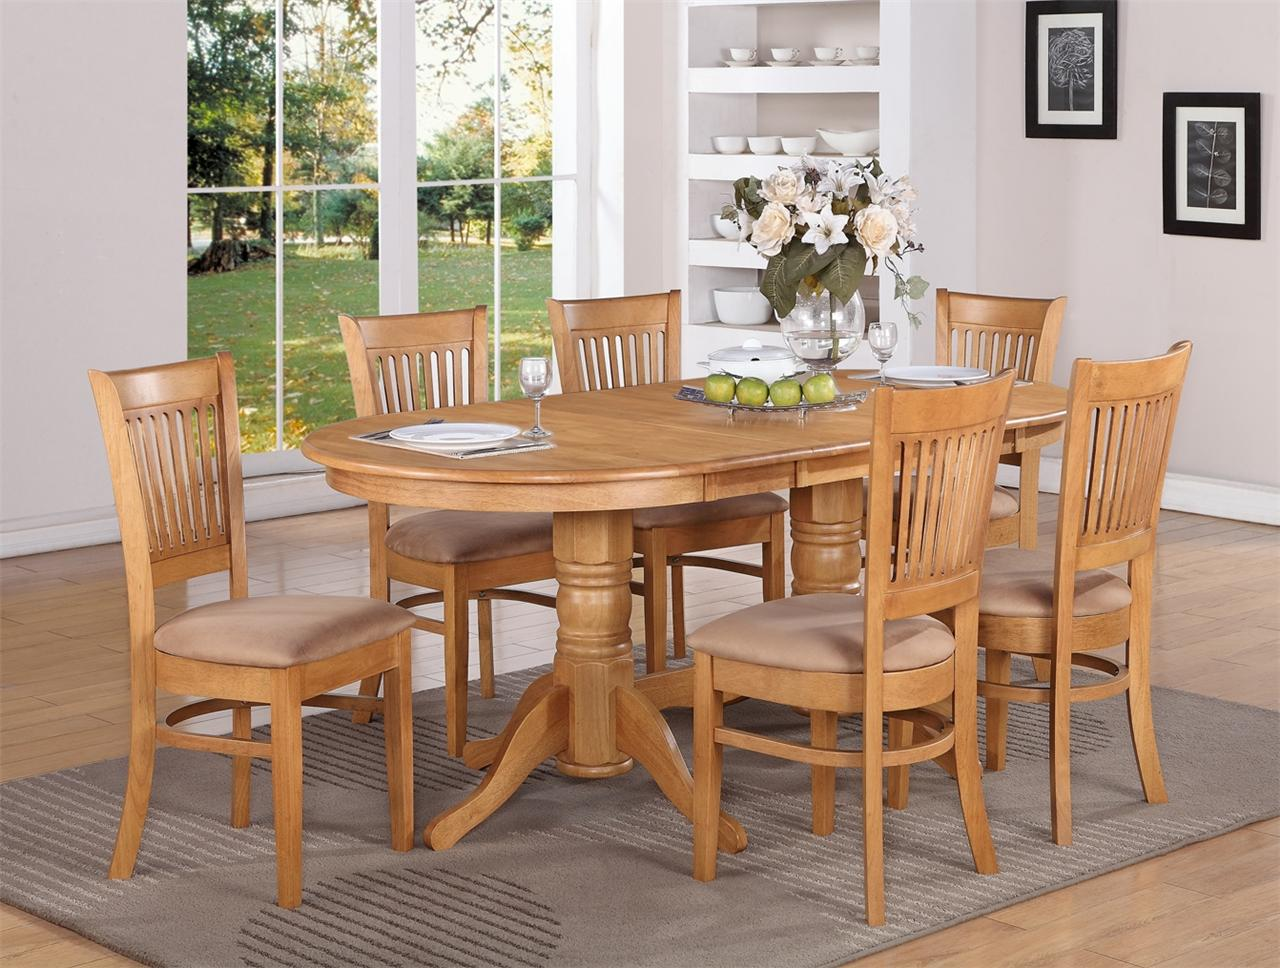 9 pc oval dinette dining room set table 8 upholstered seat chairs ebay - Pc dining room set ...